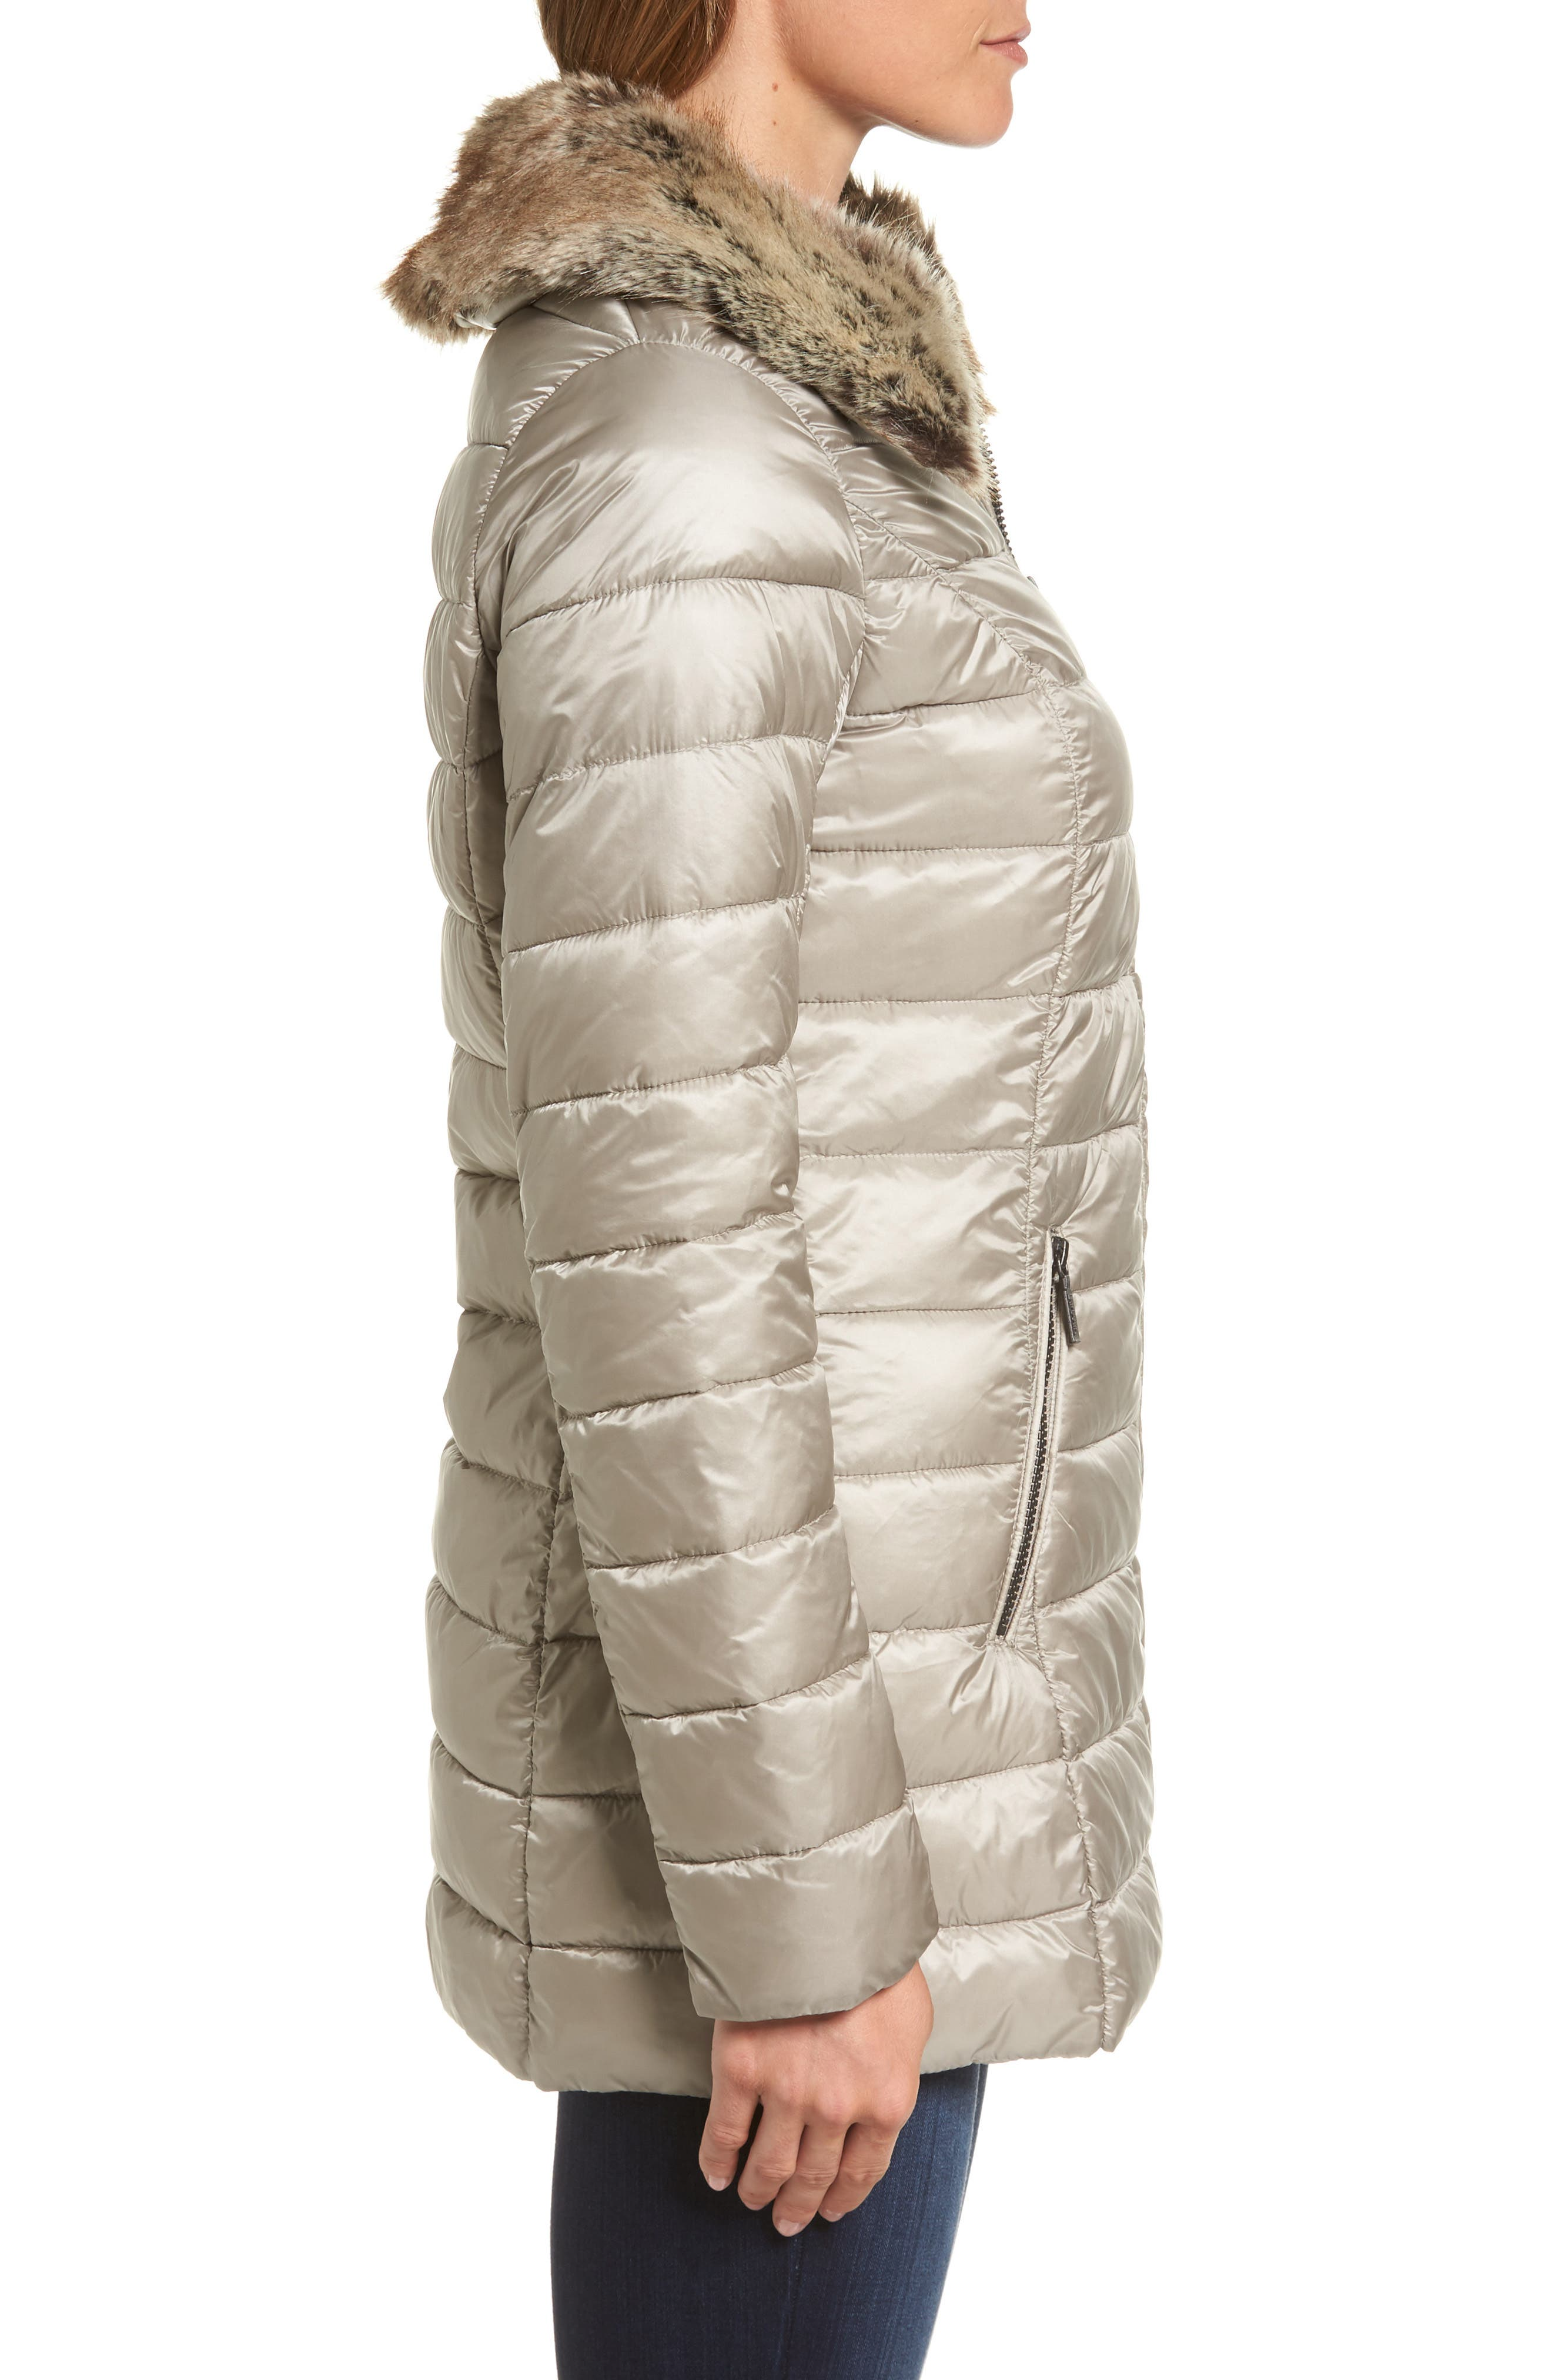 Rambleton Water Resistant Quilted Jacket with Faux Fur Collar,                             Alternate thumbnail 3, color,                             Taupe